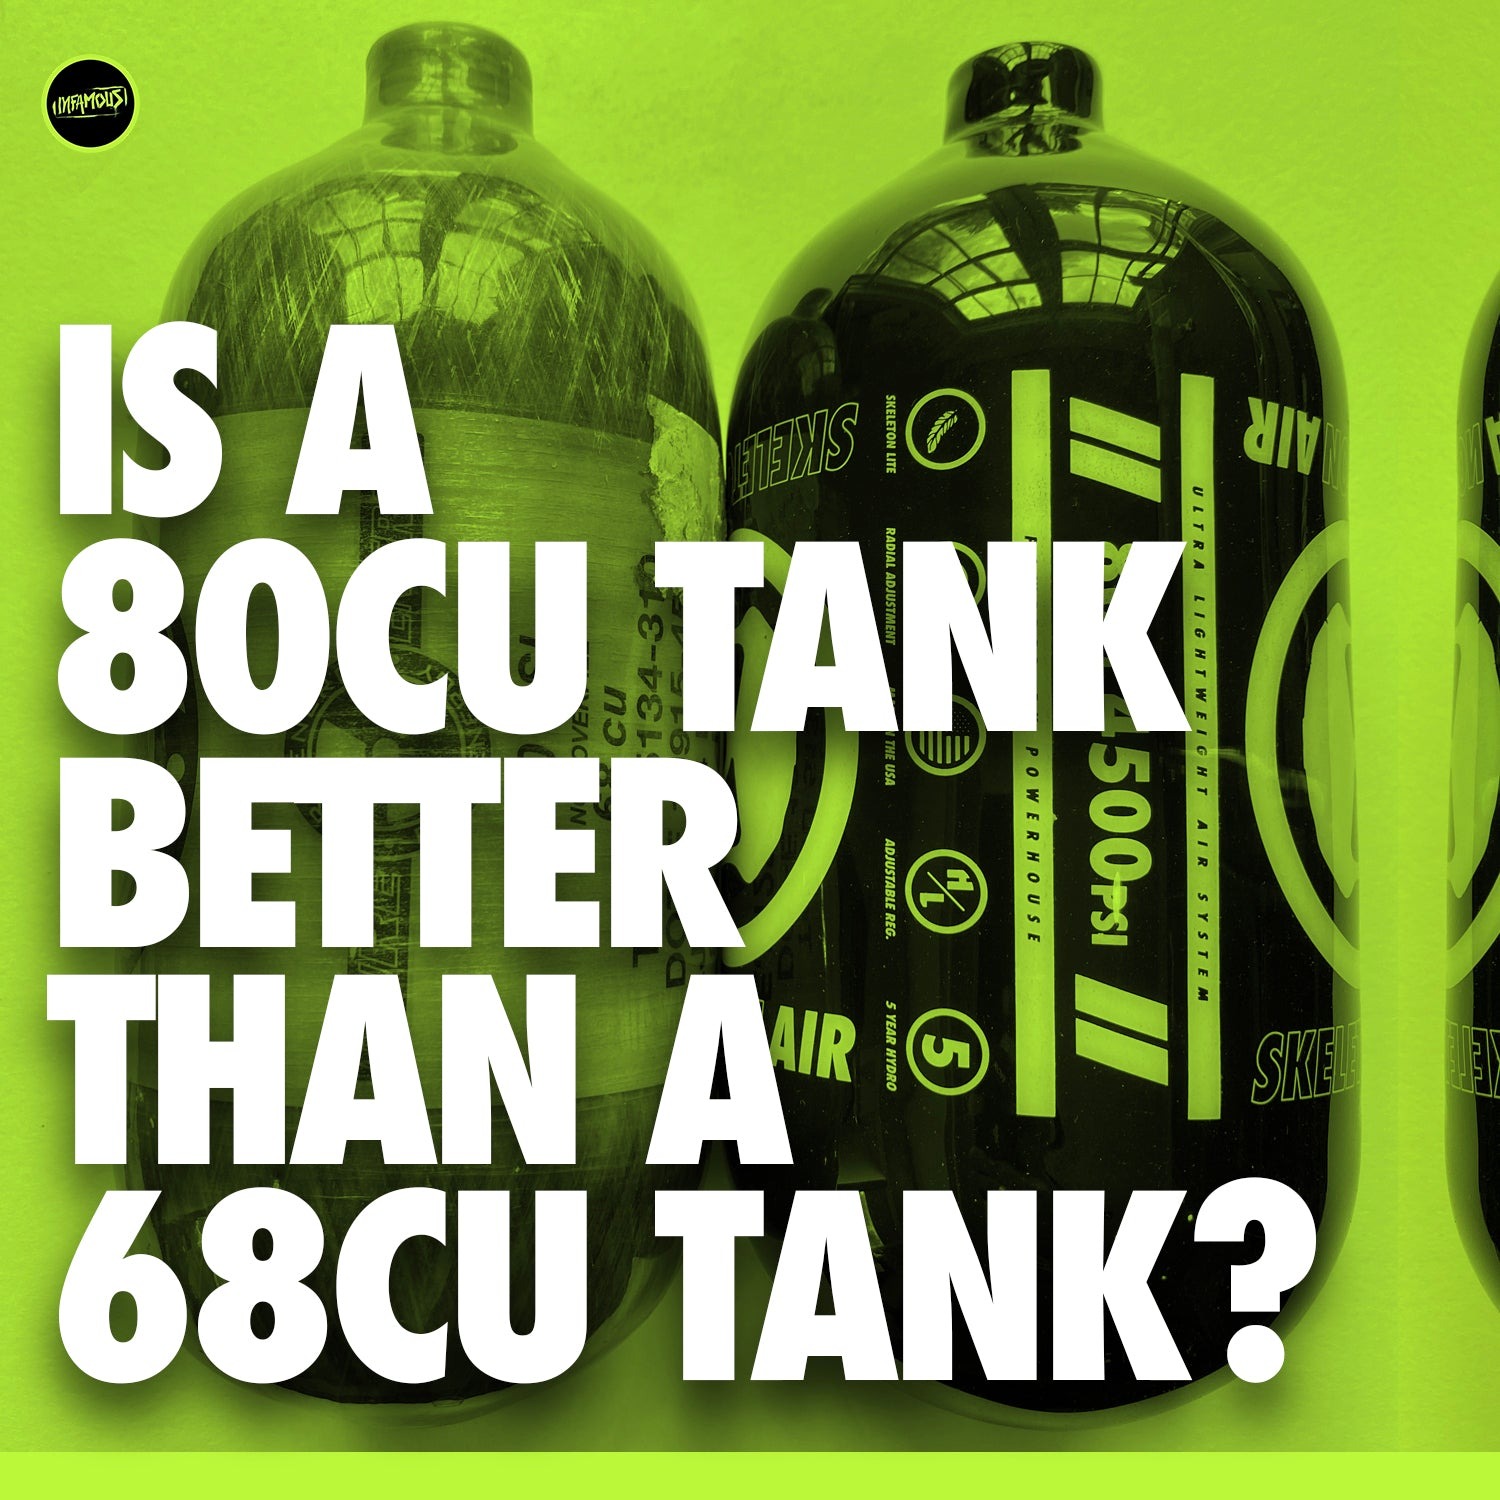 Is a 80cu Tank Better than a 68cu Tank?